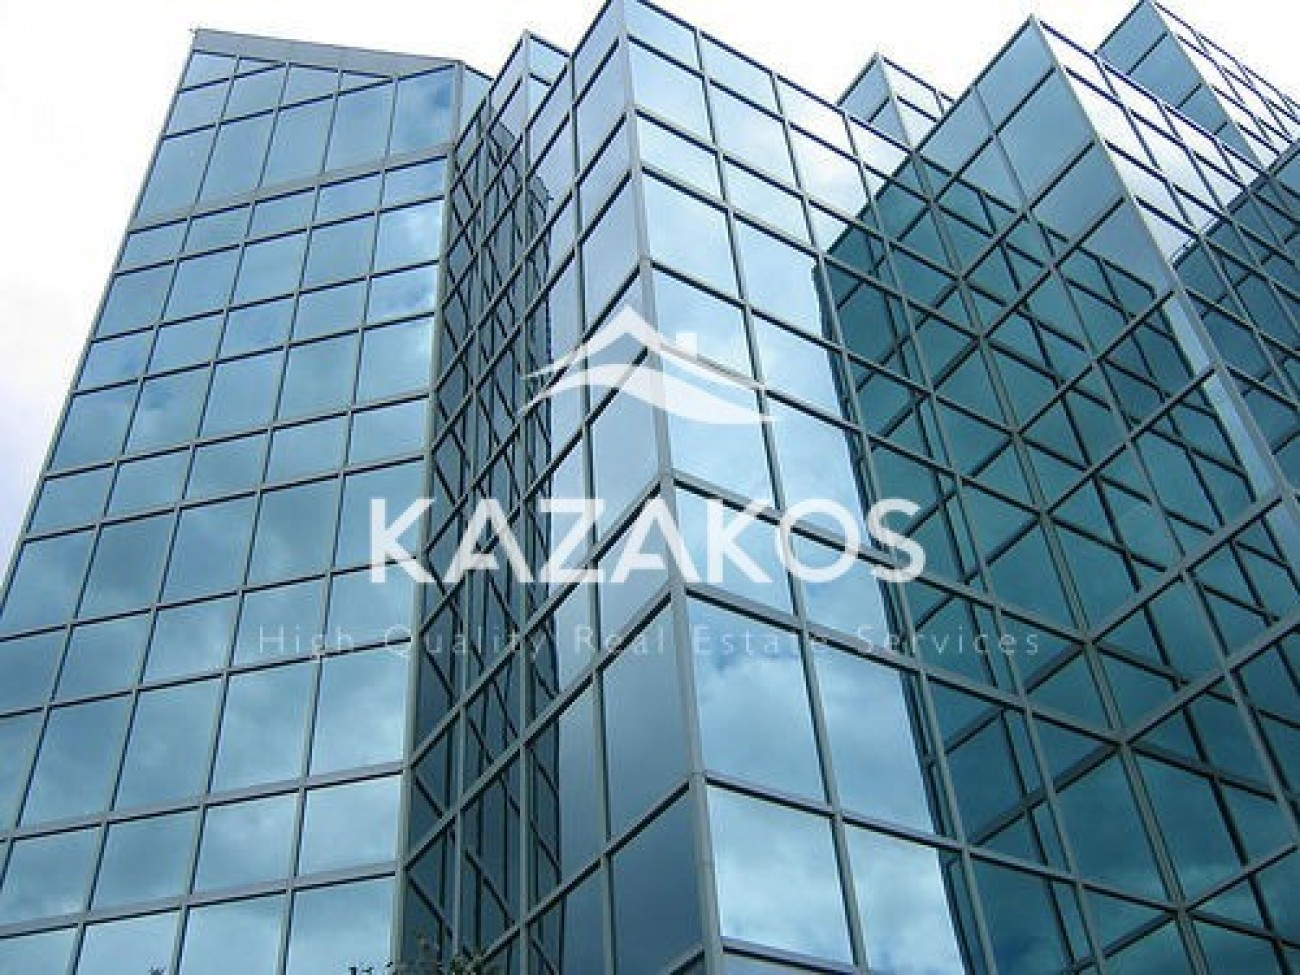 Residential Other for Sale in Ilisia, Athens City Center, Greece